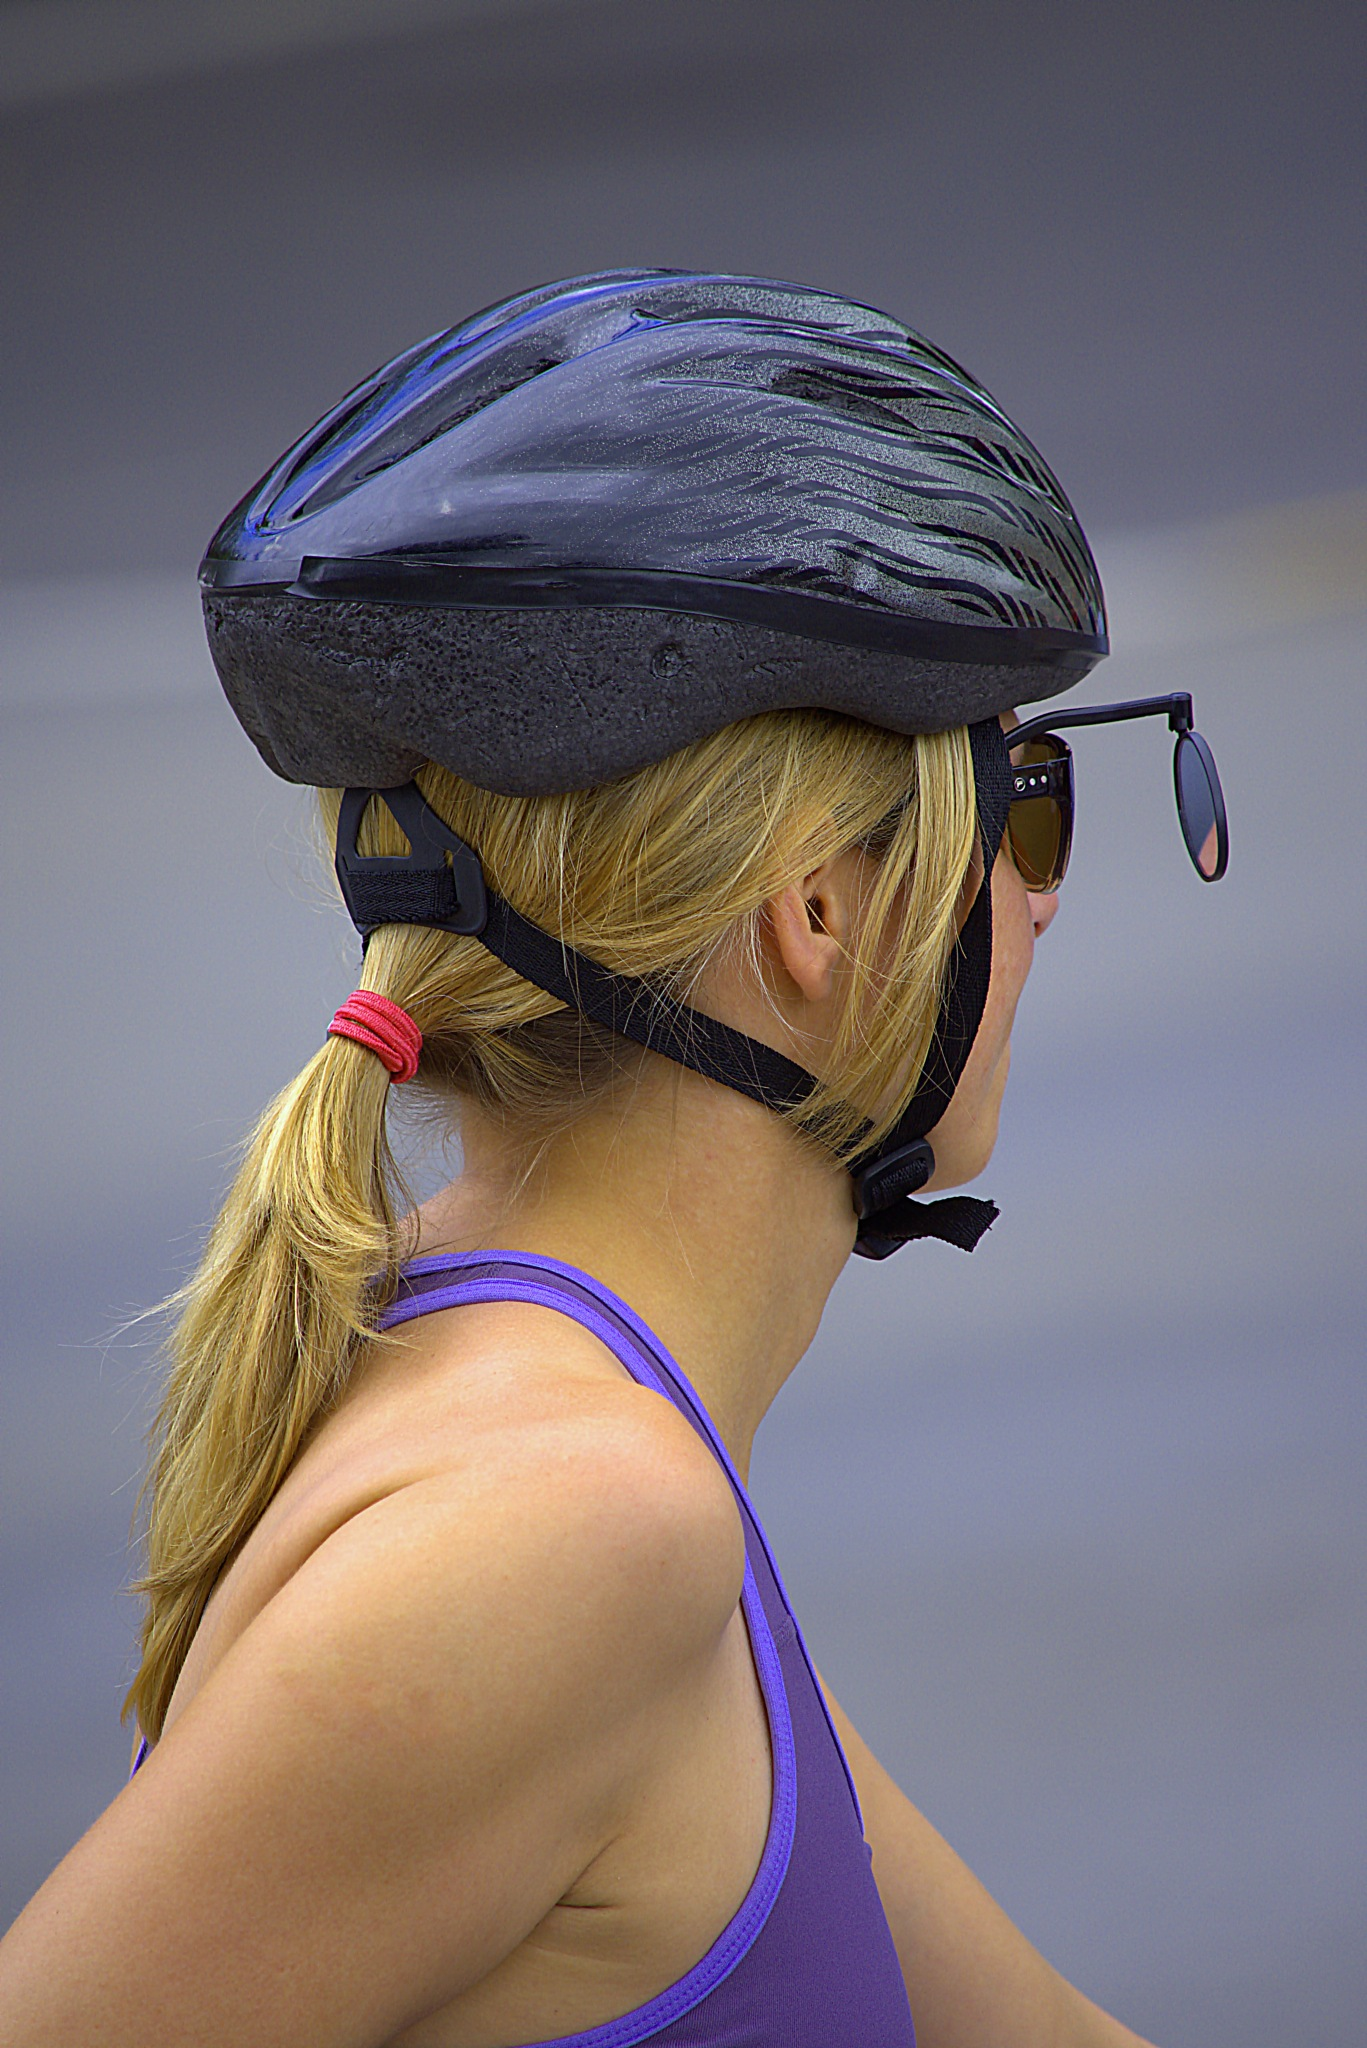 Cyclist Rear View by pscottwong